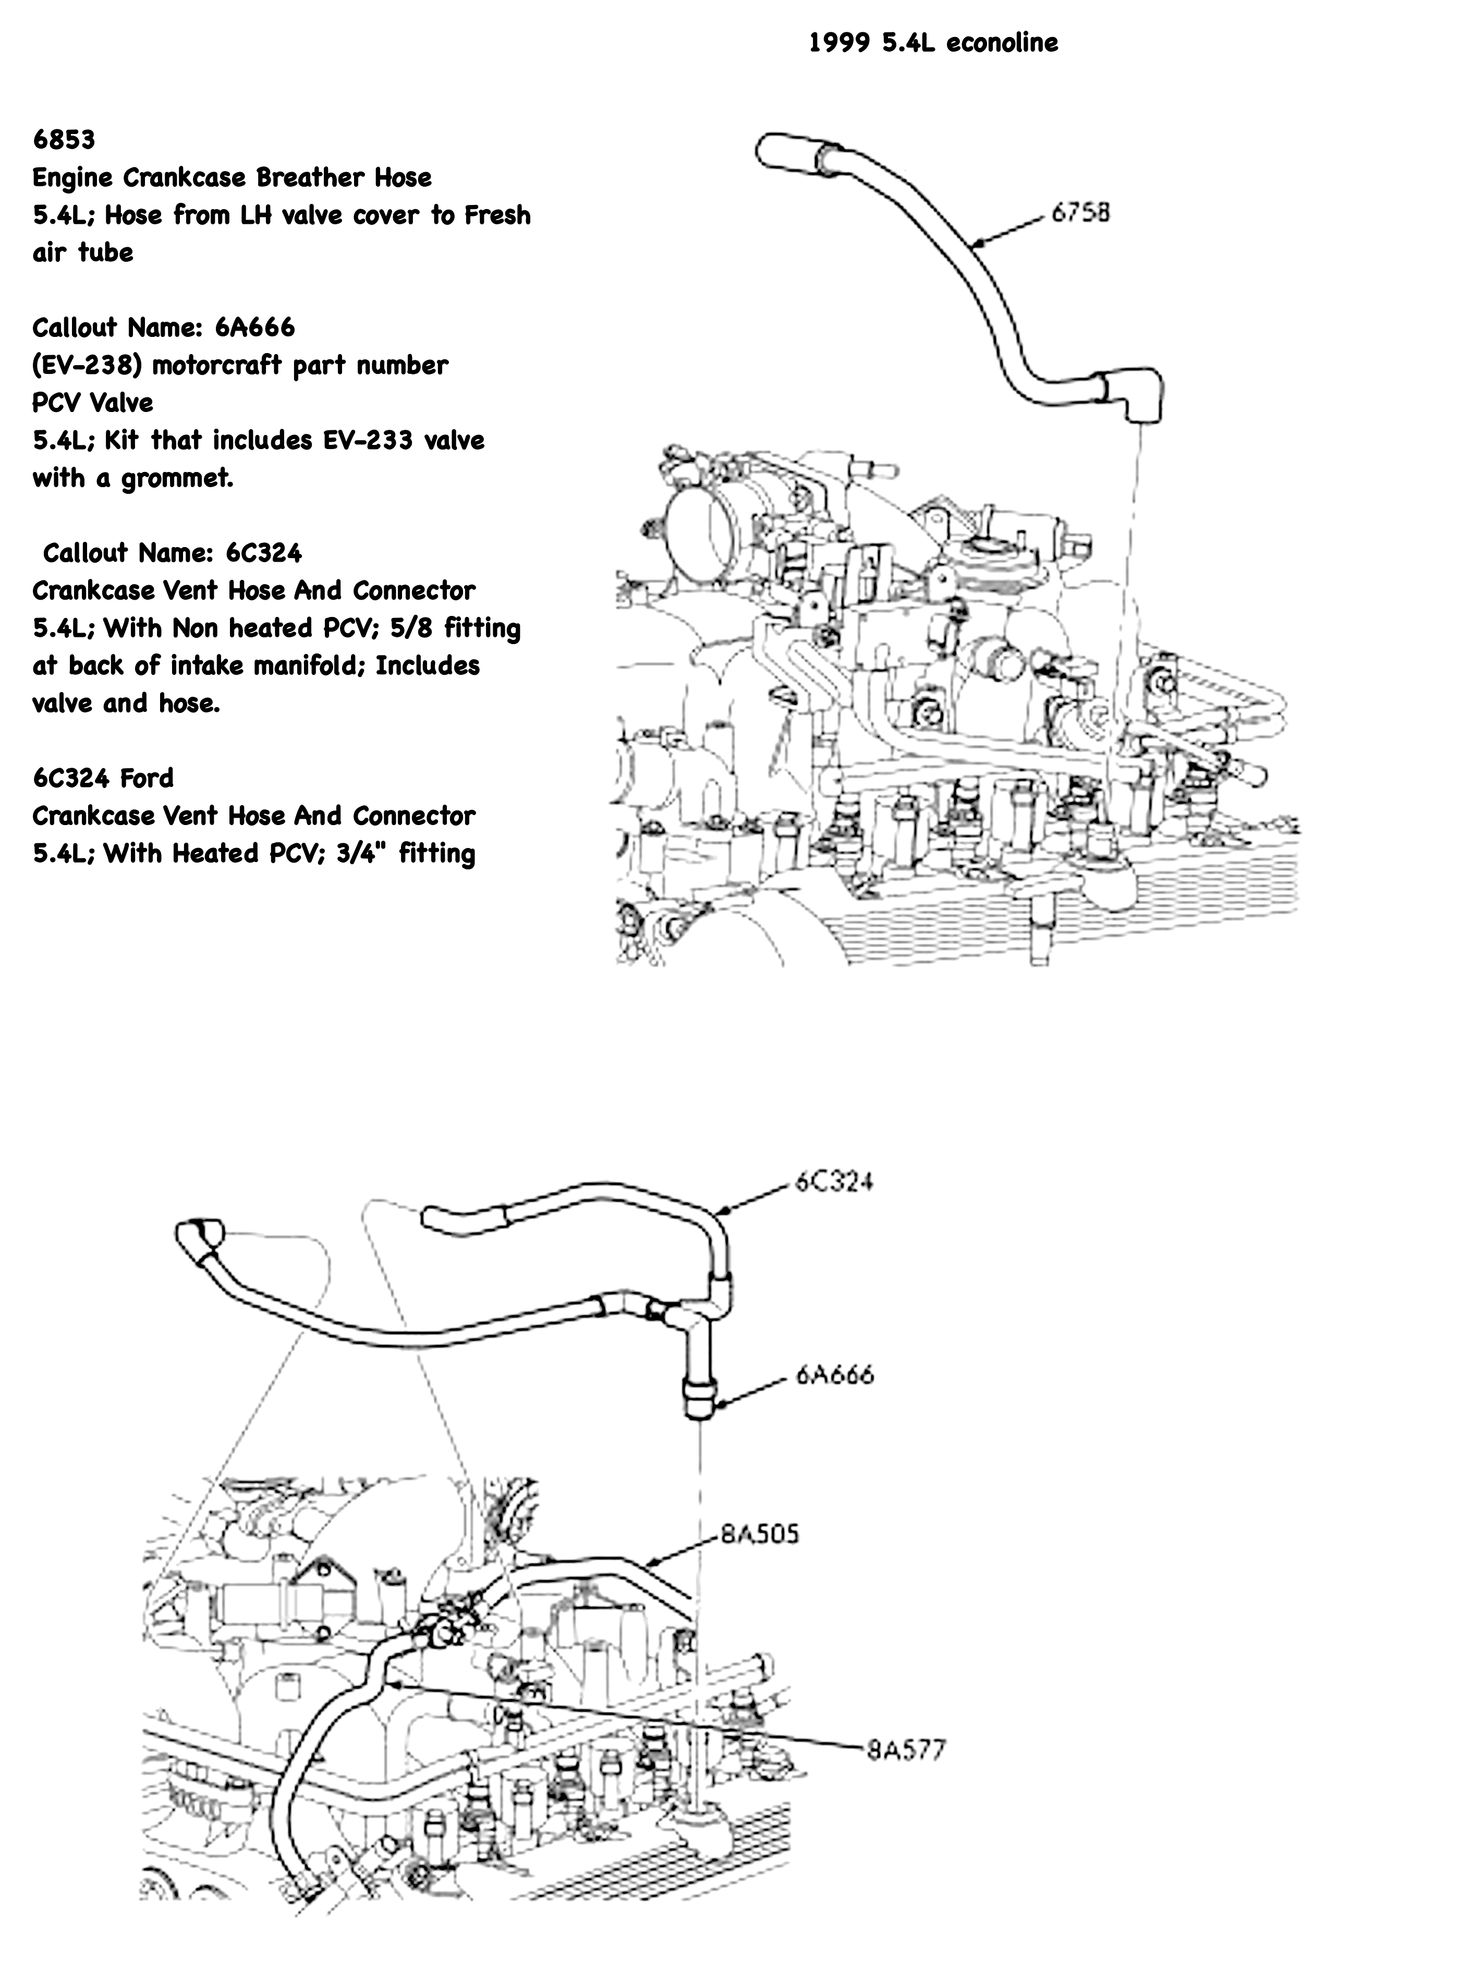 4 2l Ford Engine Intake Diagram Ford 4 0 Intake Manifold Diagram Wiring Diagram Odicis